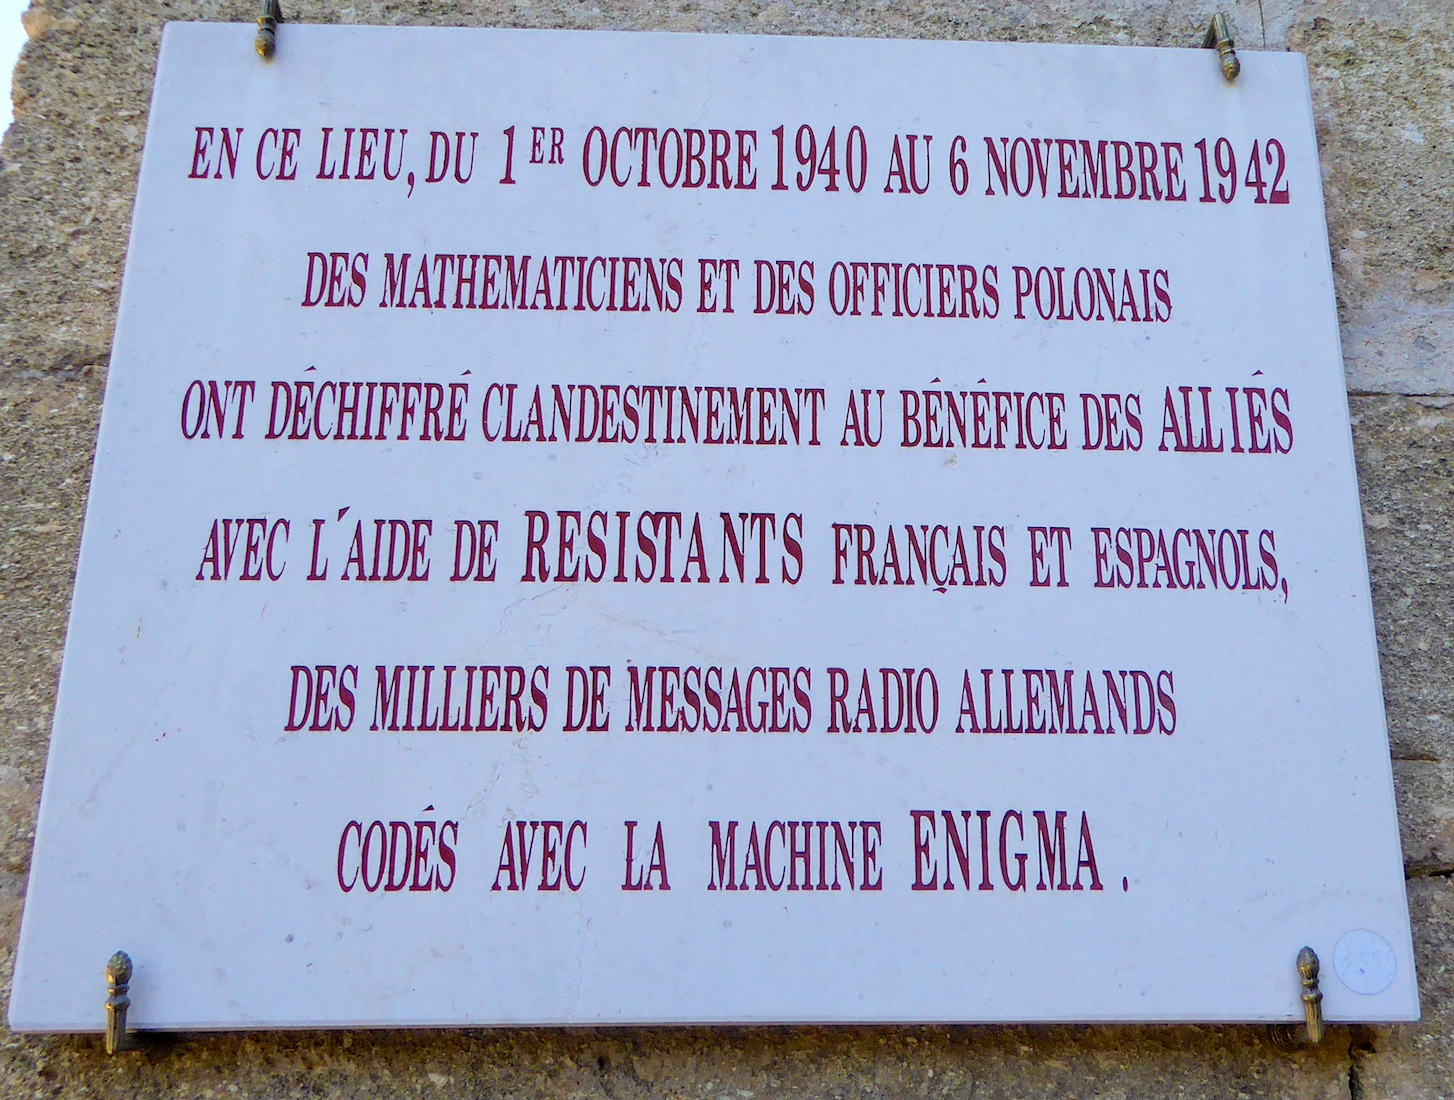 Commemorative plaque to the Polish code breakers, outside Château des Fouzes, Uzes, France, who first cracked the Enigma code